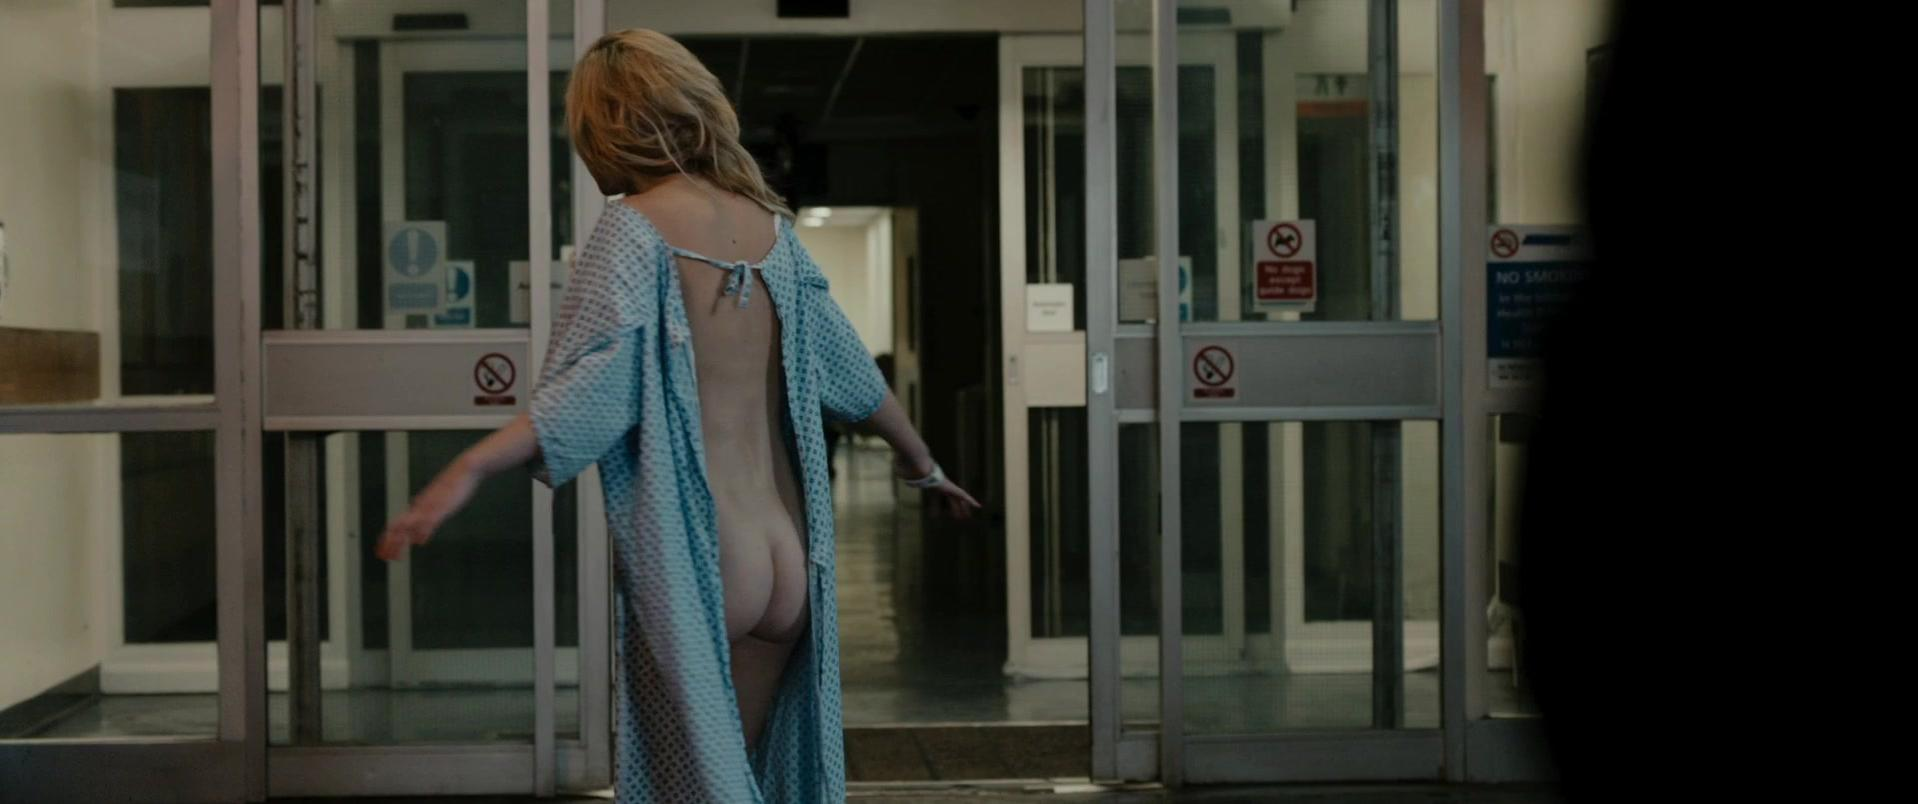 Imogen Poots nude - A Long Way Down (2014)